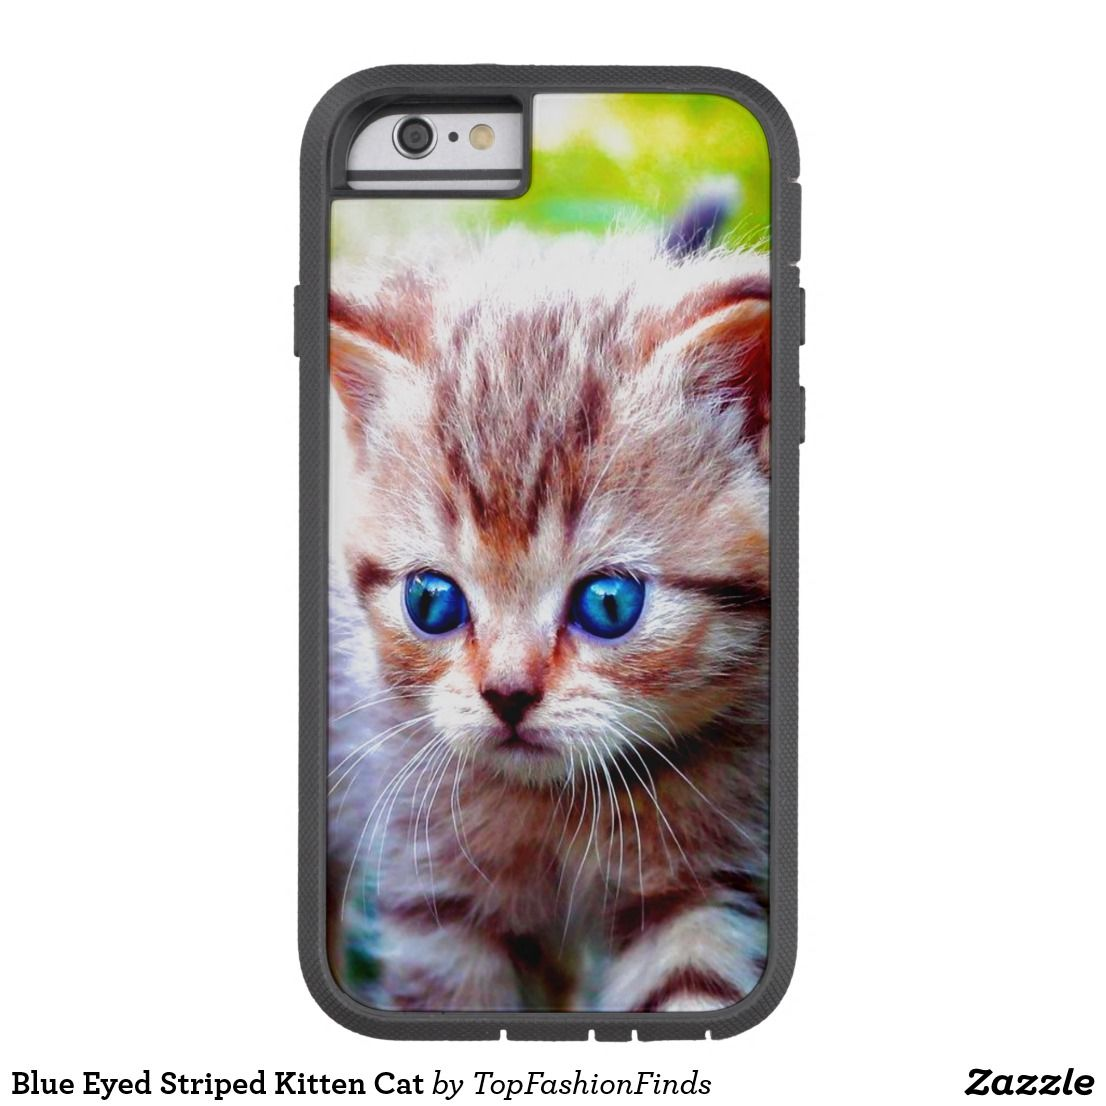 Blue Eyed Striped Kitten Cat Case Mate Iphone Case Zazzle Com Cats Case Cats And Kittens Kittens